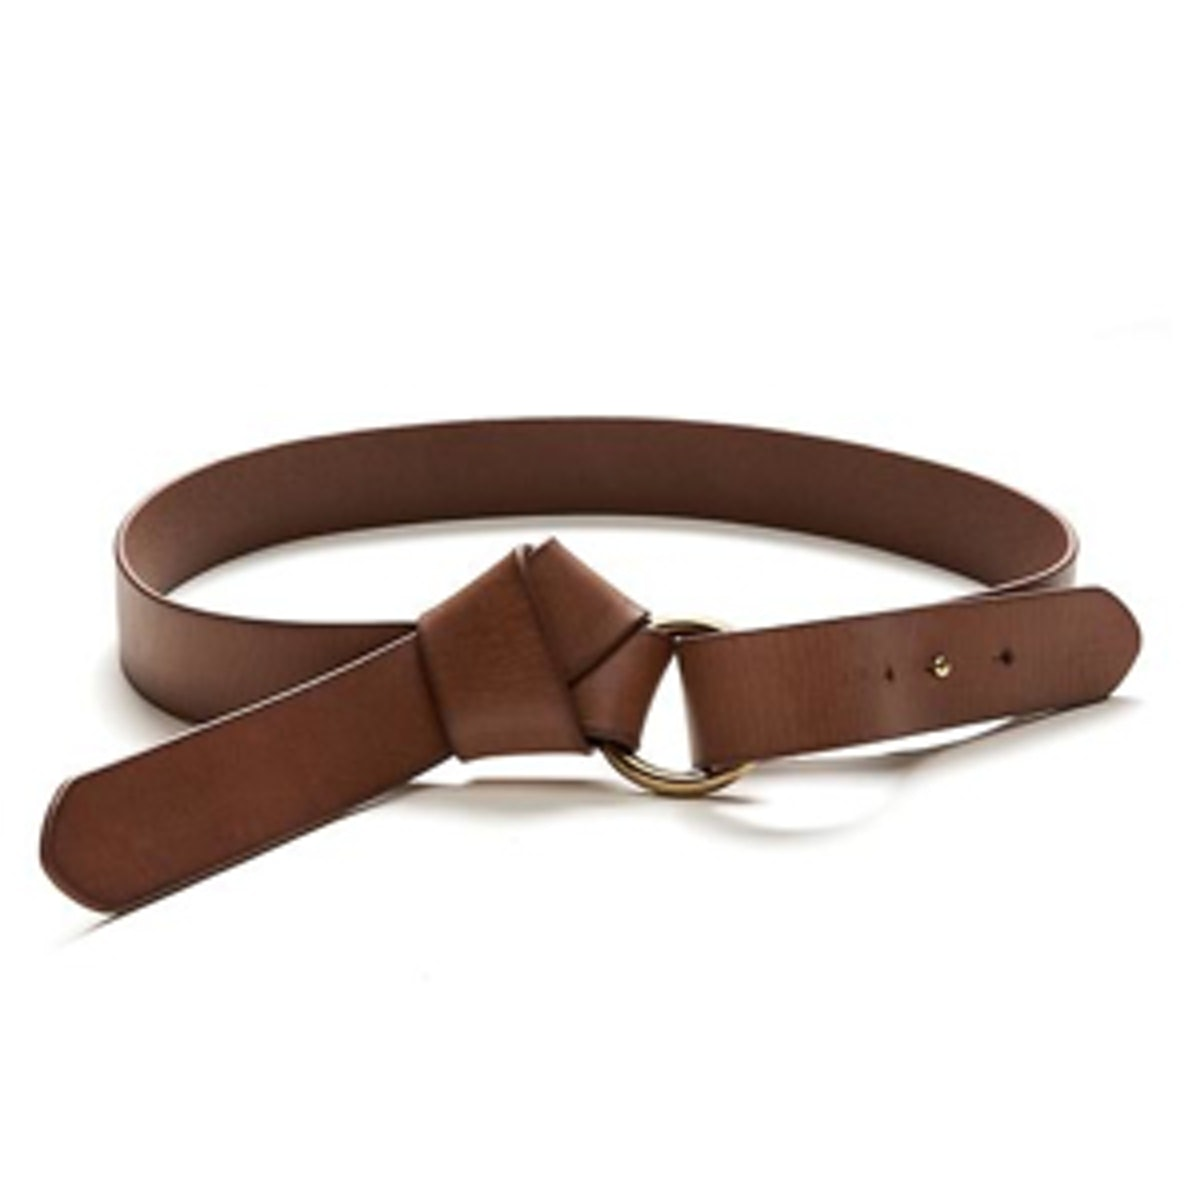 Knotted Leather Belt